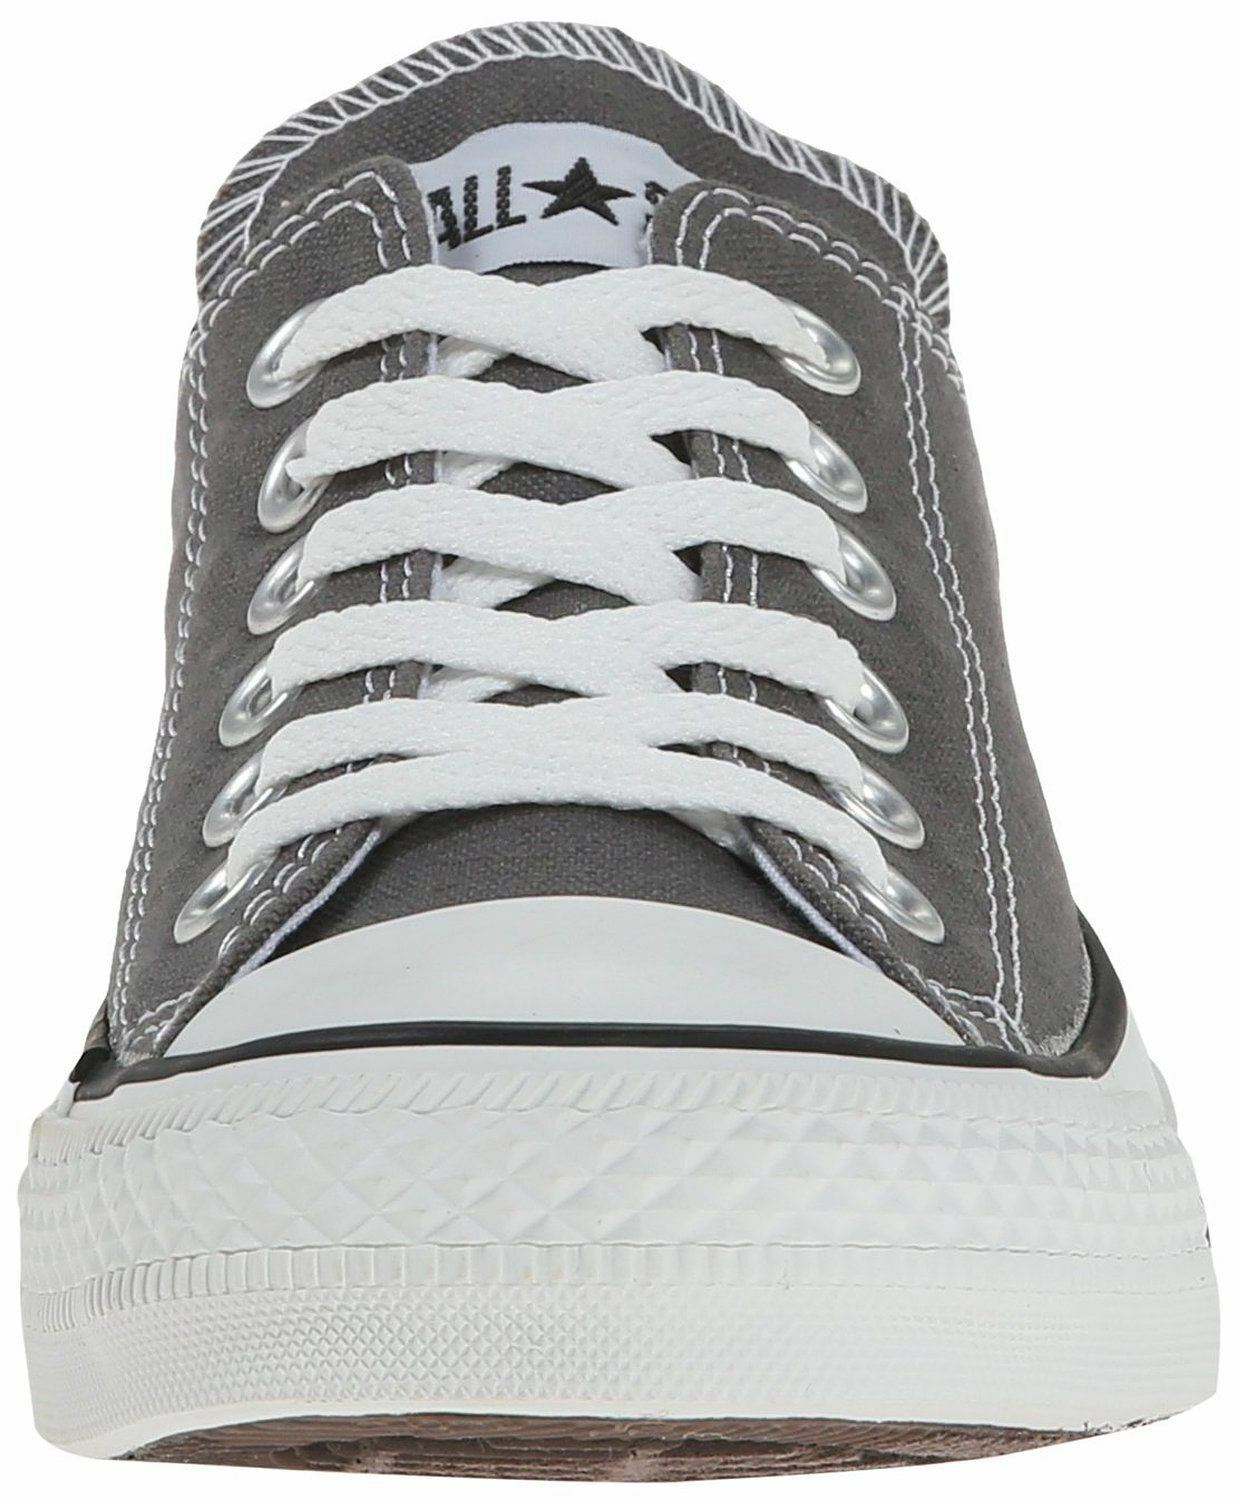 Converse Chuck Taylor All Star Charcoal Blanc Blanc Charcoal Ox Lo Unisex Baskets Chaussures bf4842